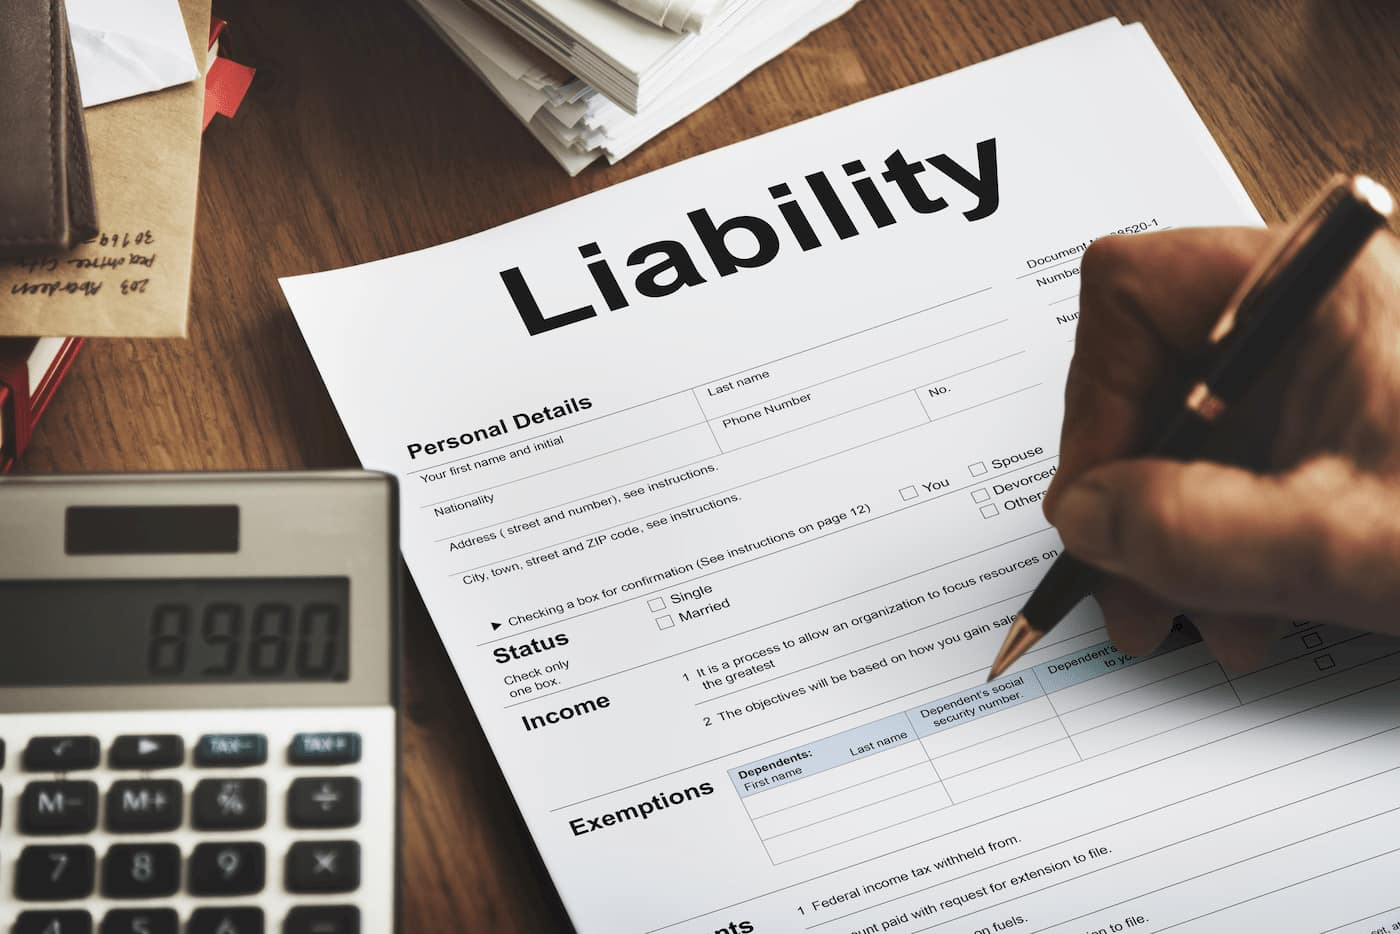 Liabilities at rental property may surprise you